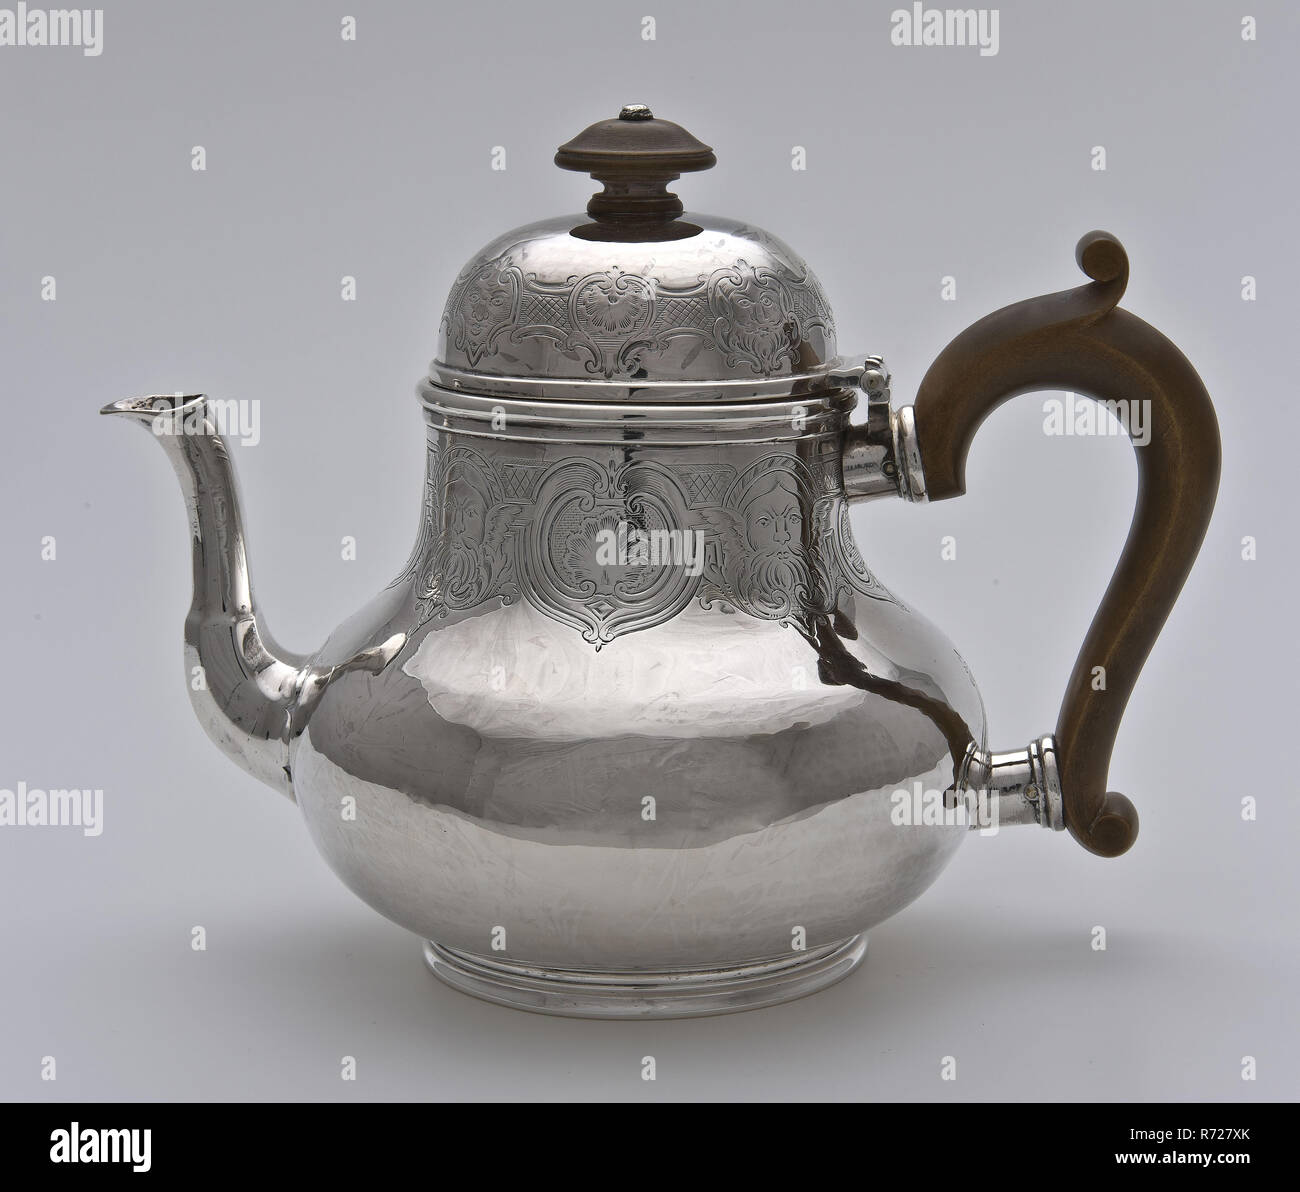 Silver teapot with brown wooden handle in bud on lid, teapot tableware holder silver wood, engraved pear shaped body on constricted stand ring high arched lid with hinge spout wooden thorned ear wooden buttoned button bottom bottom (smashed) serve serve tea drink drink tea set - Stock Image